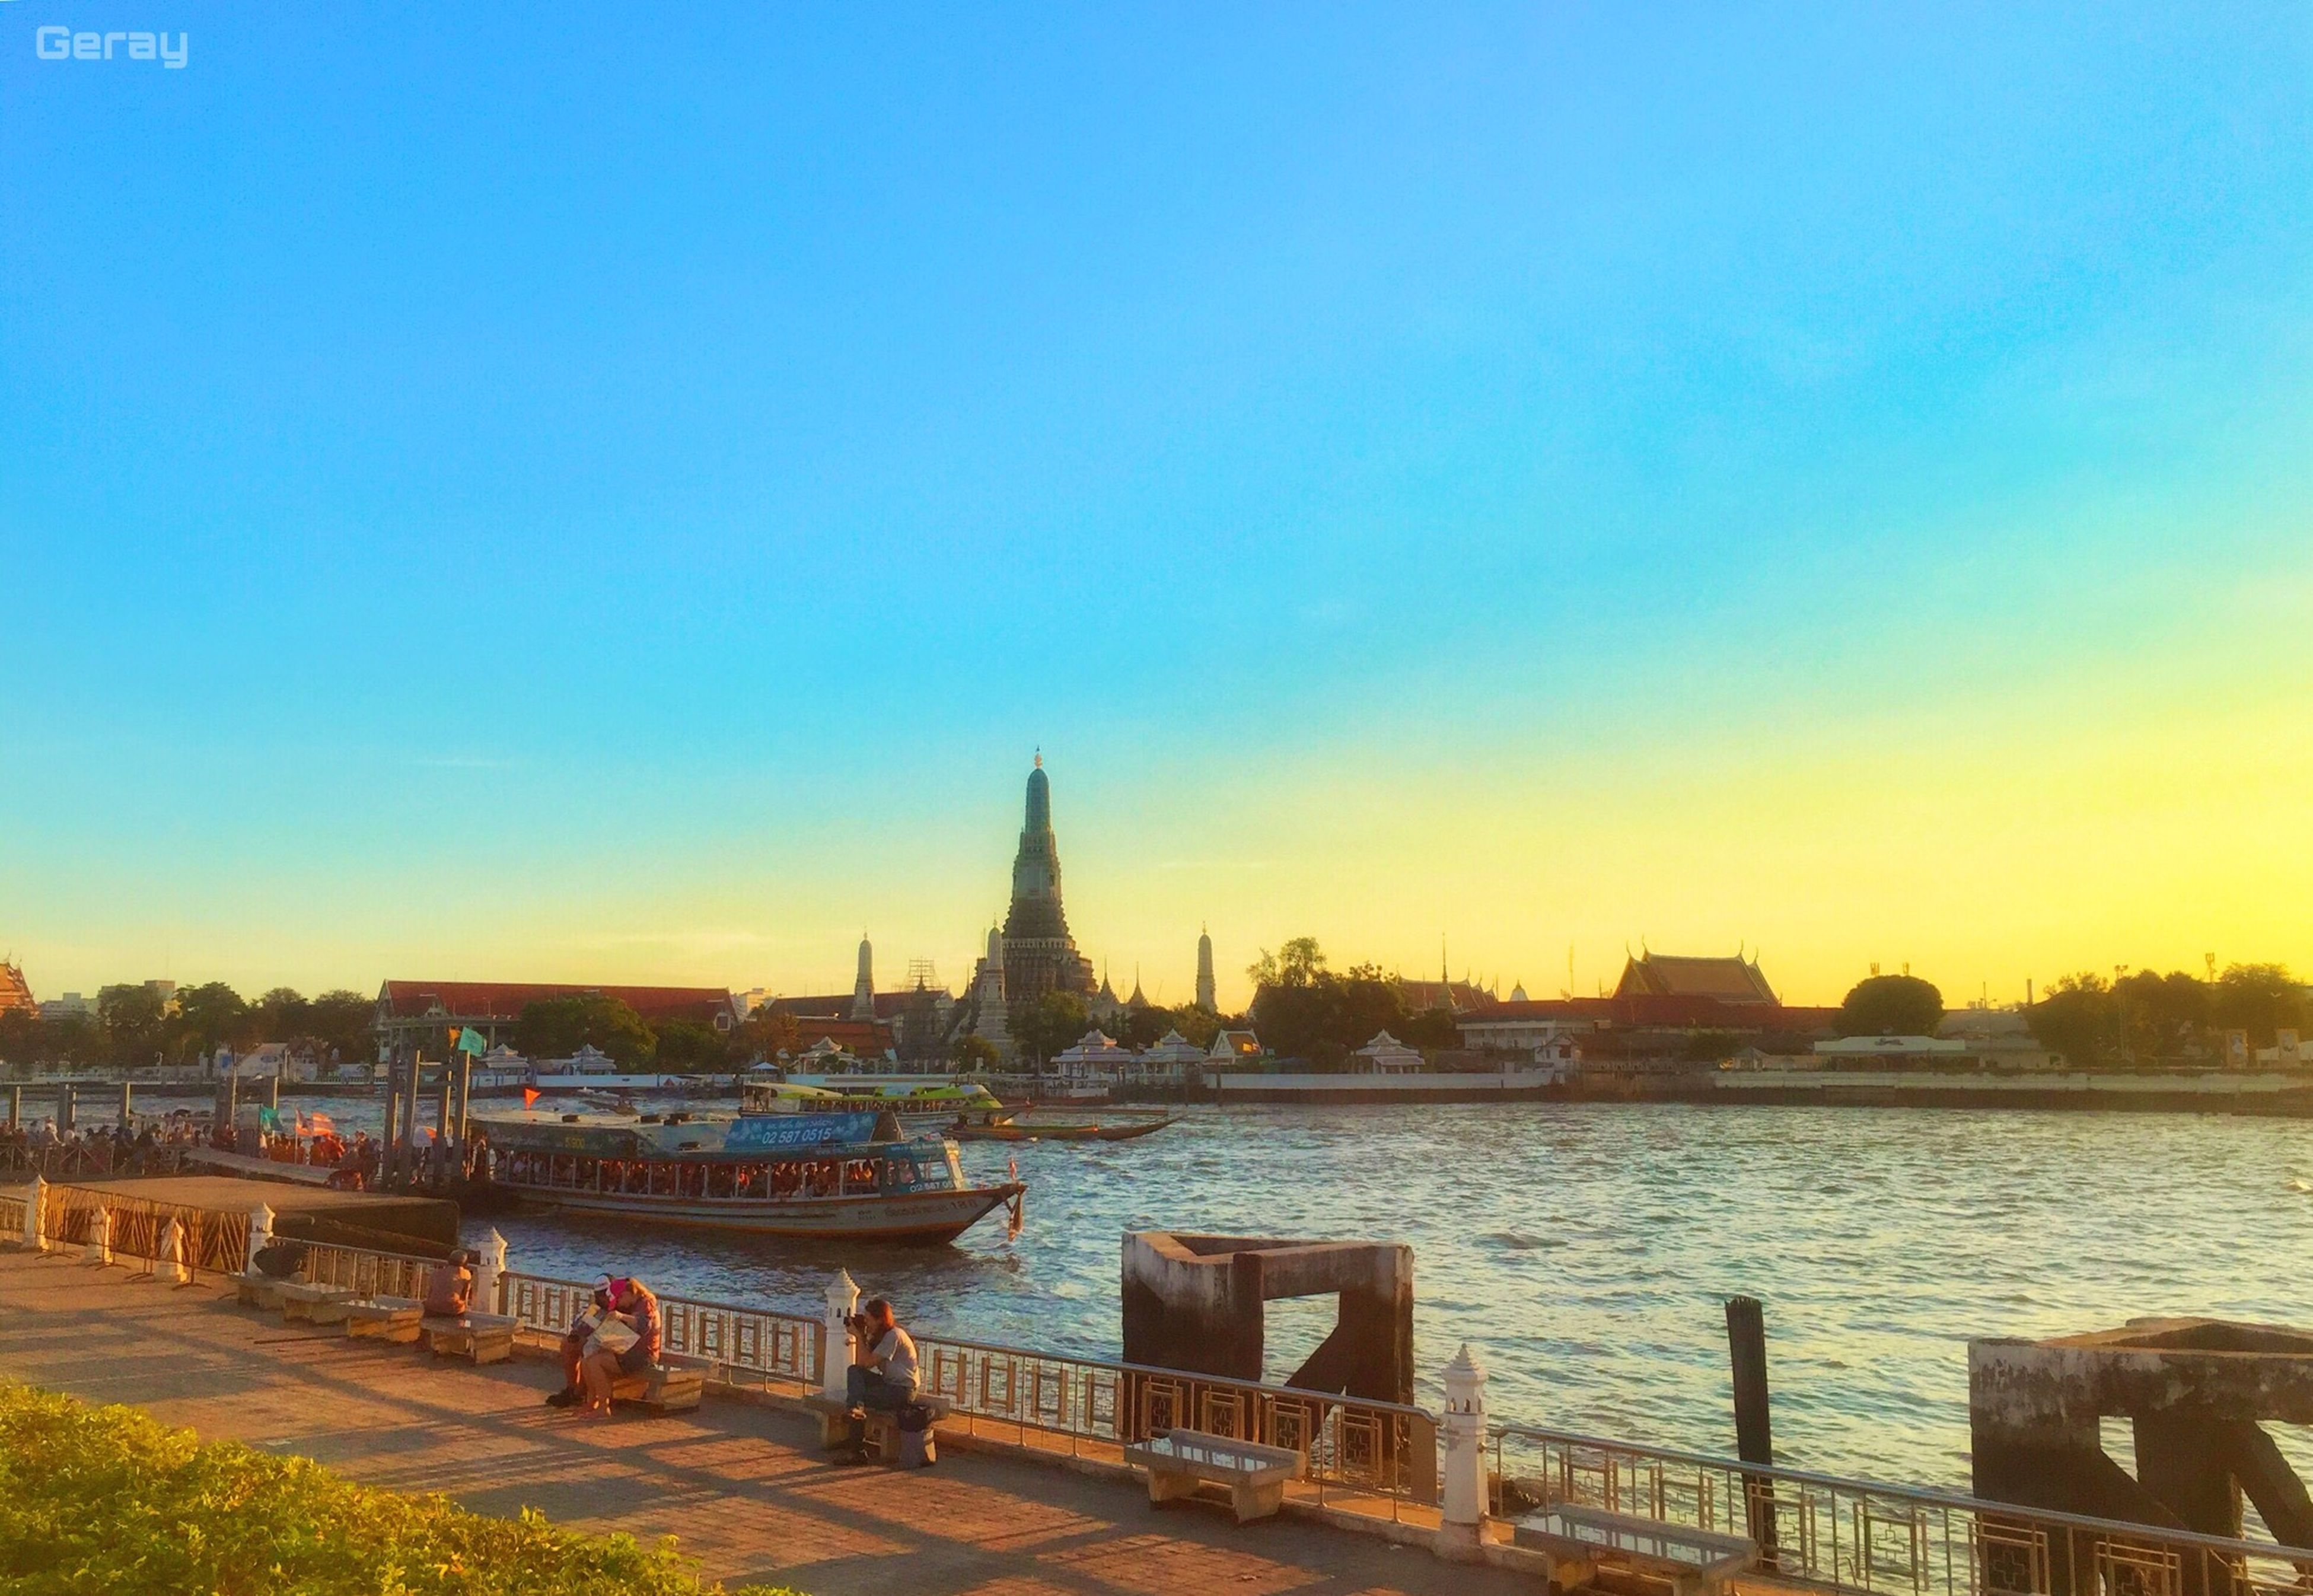 water, clear sky, built structure, architecture, copy space, building exterior, blue, transportation, nautical vessel, sea, mode of transport, boat, river, railing, sky, moored, outdoors, incidental people, city, sunset